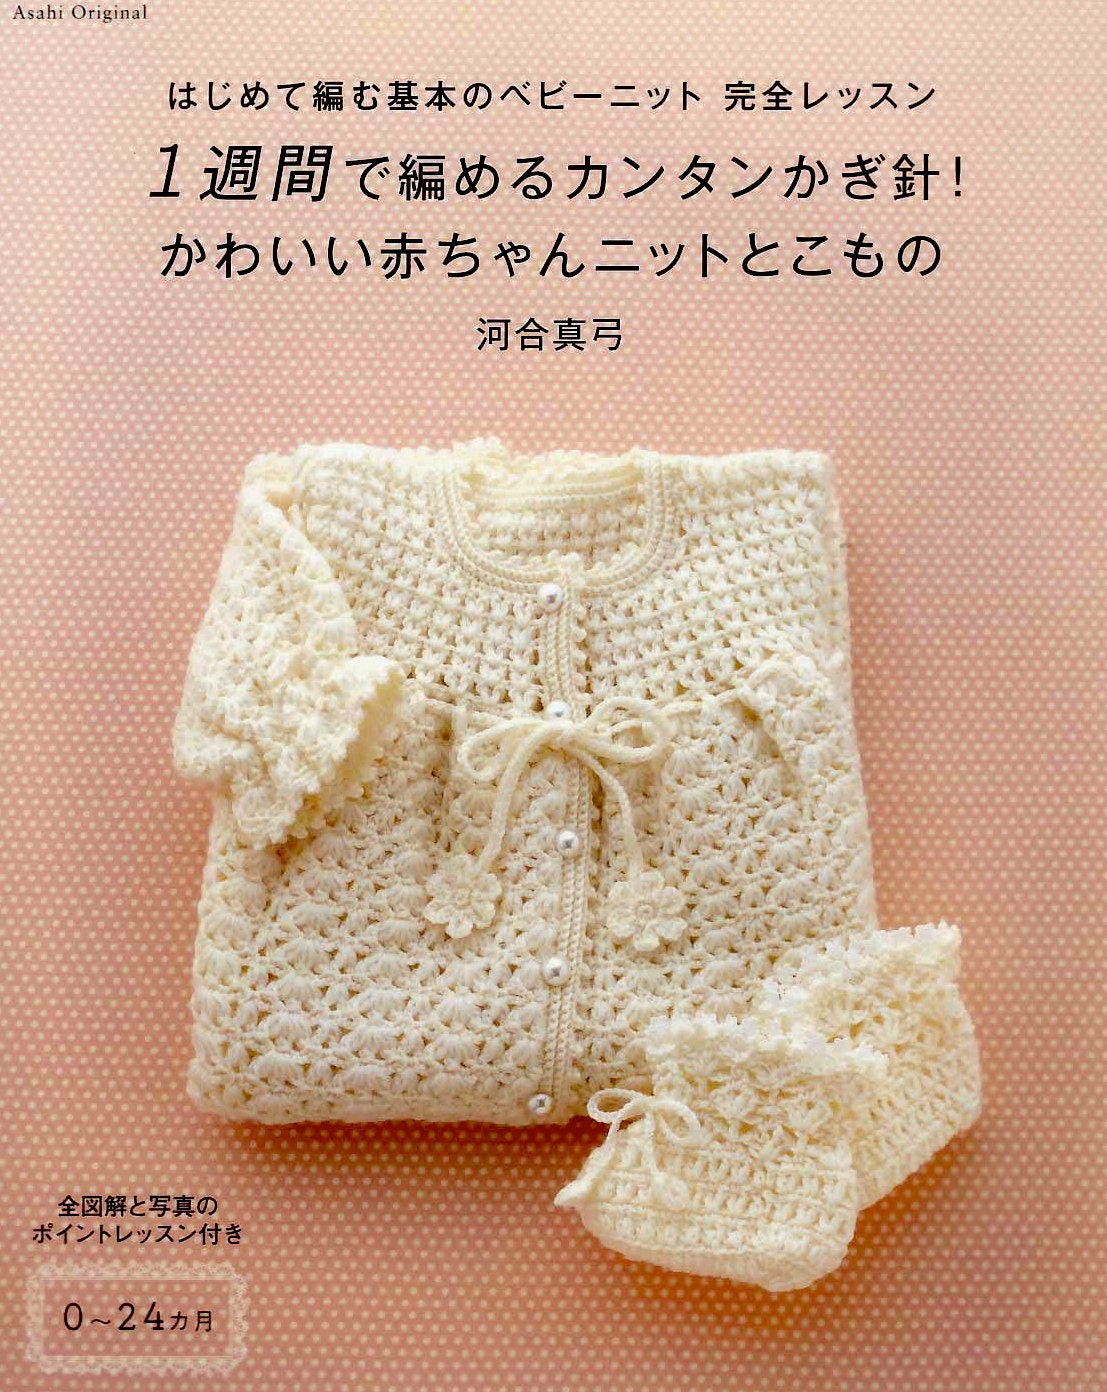 Baby Crochet Patterns Japanese Crochet Book Pdf Baby Boy Etsy